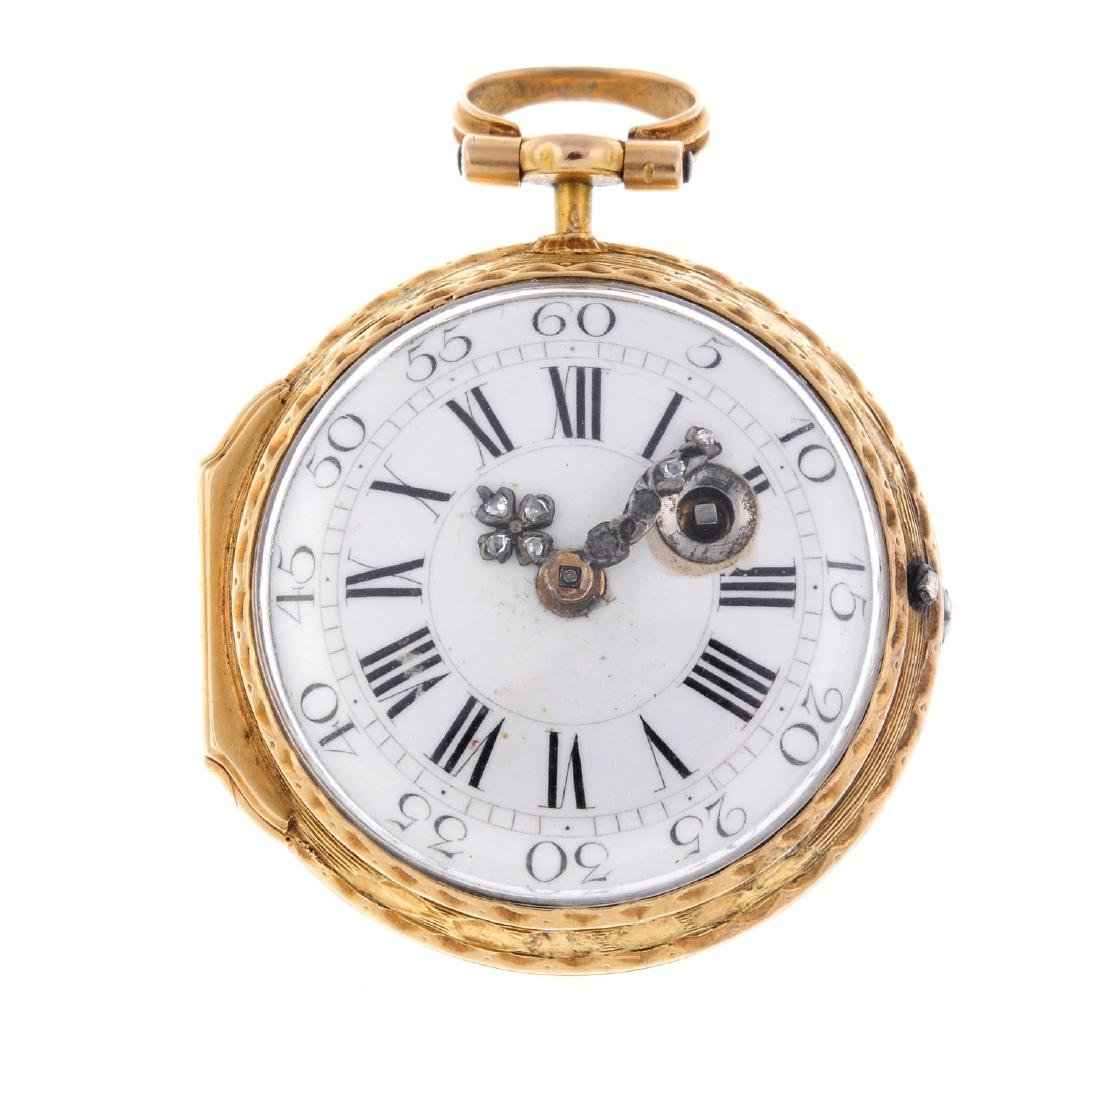 An open face fob watch by Romilly. Gilt case with